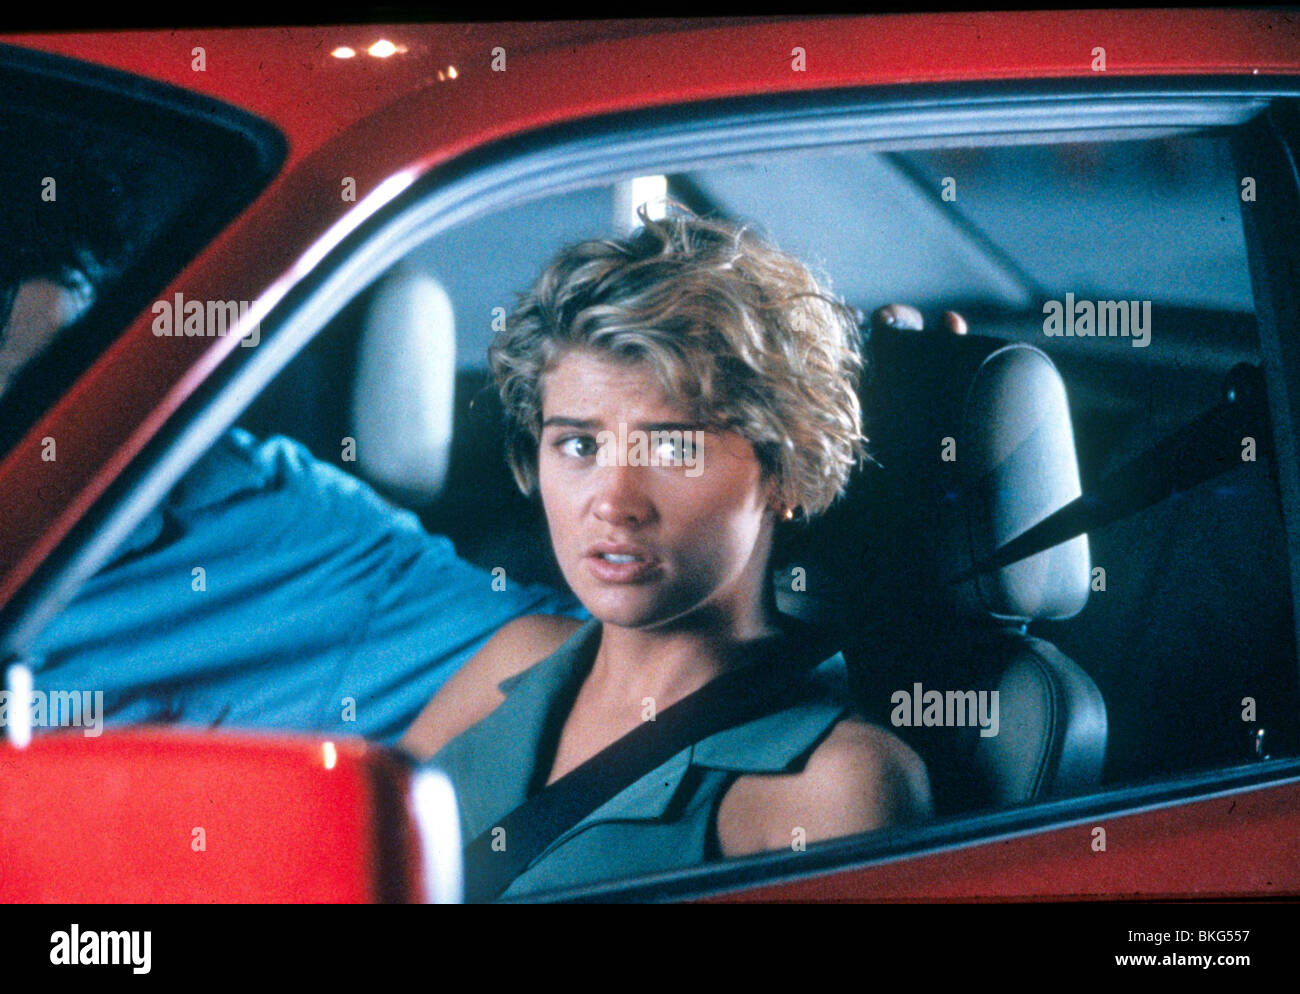 THE CHASE -1994 KRISTY SWANSON - Stock Image